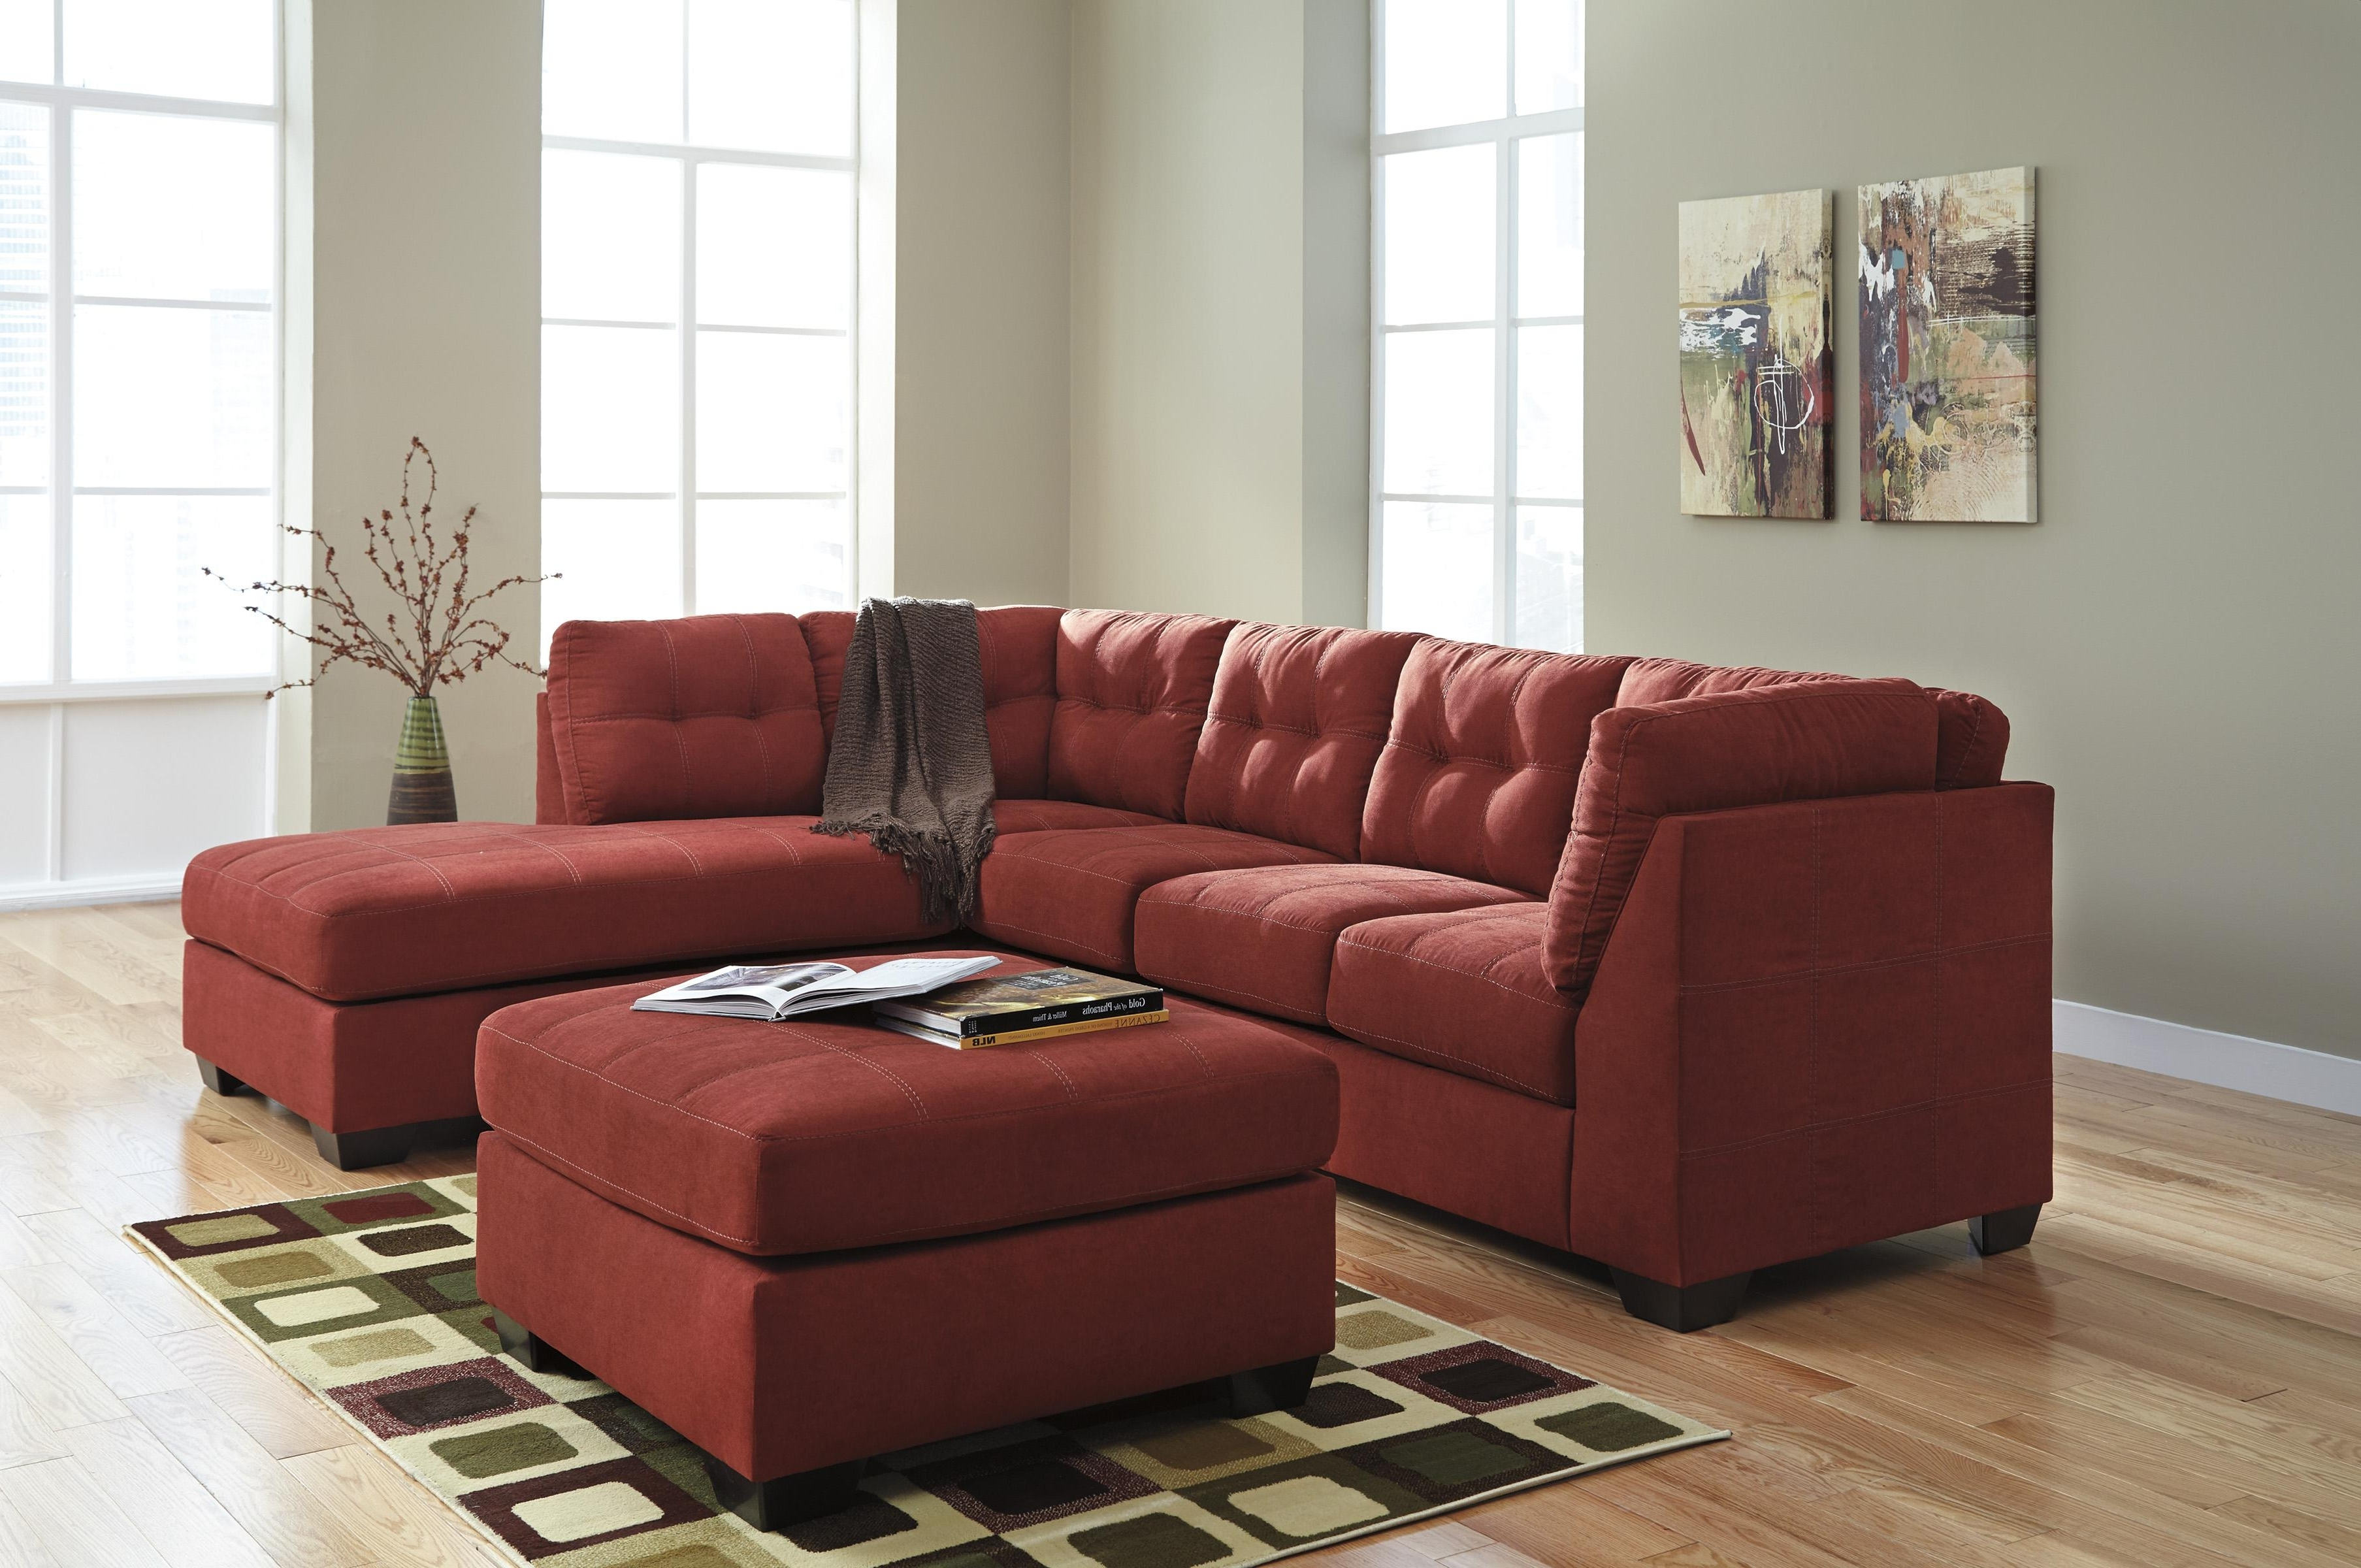 Newest Sectional Sofas With 2 Chaises Pertaining To Benchcraft Maier – Sienna 2 Piece Sectional W/ Sleeper Sofa (View 9 of 15)